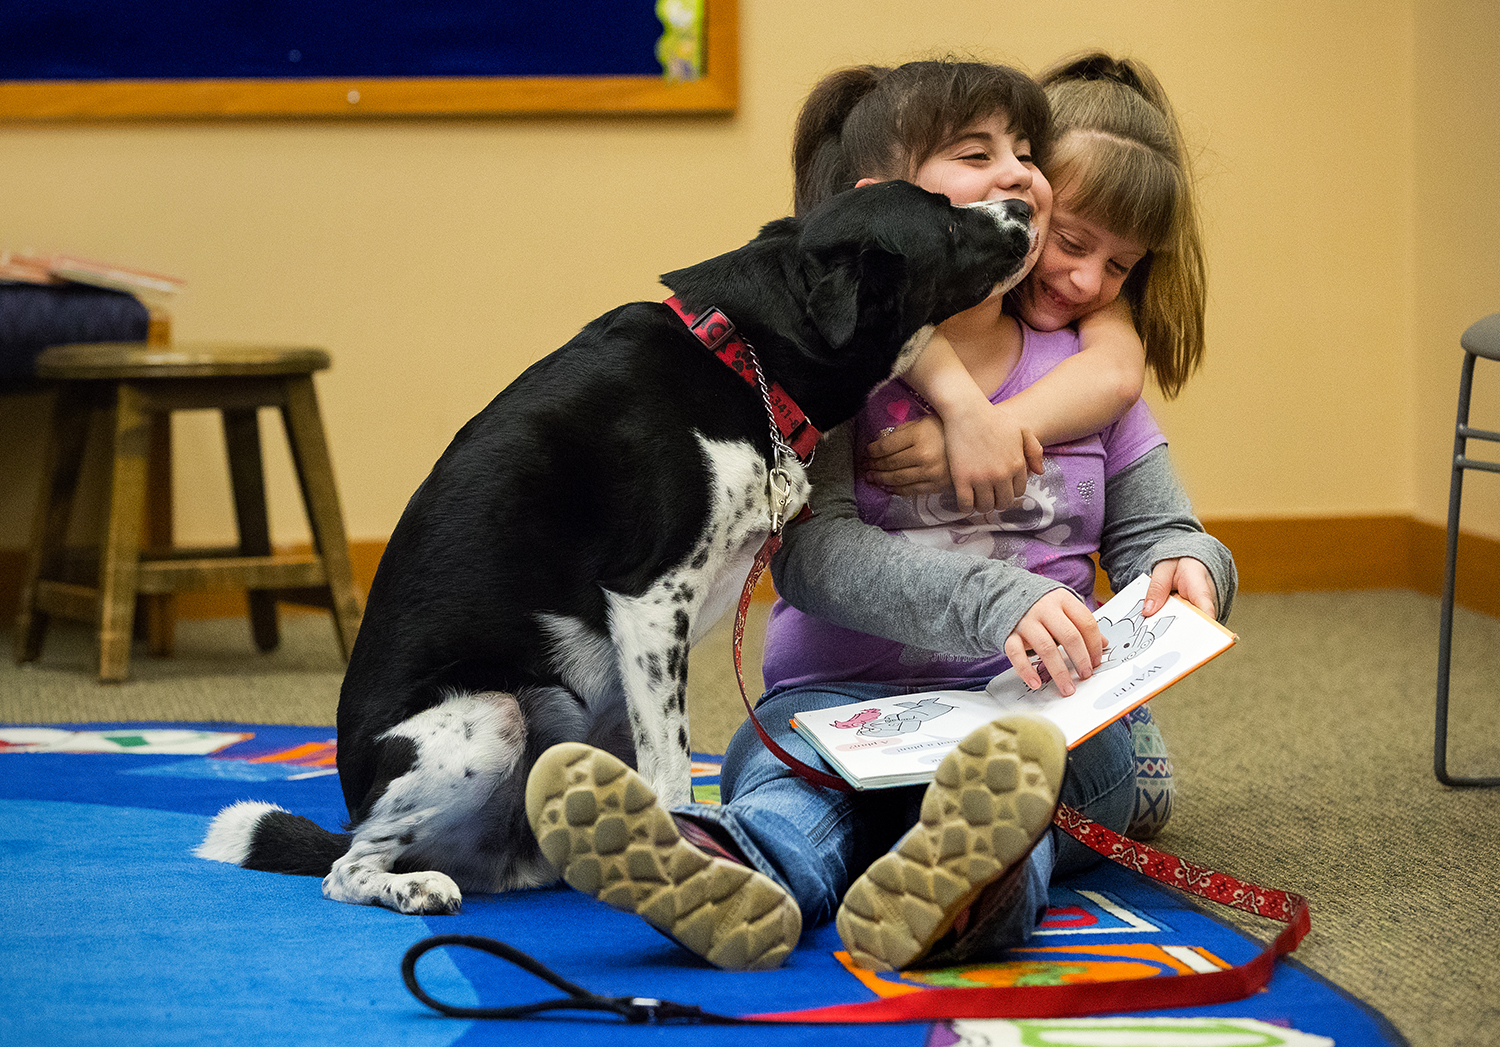 Miranda Dowllar, left, gets a kiss from Jack, a certified therapy dog, and a hug from her sister Mackenzie during the Read to A Therapy Dog event at the Lincoln Library April 10. Jack's owner, Carol Green, rescued him as a four-month-old puppy from the Sangamon County Animal Control shelter and trained him as a therapy dog. Ted Schurter/The State Journal-Register